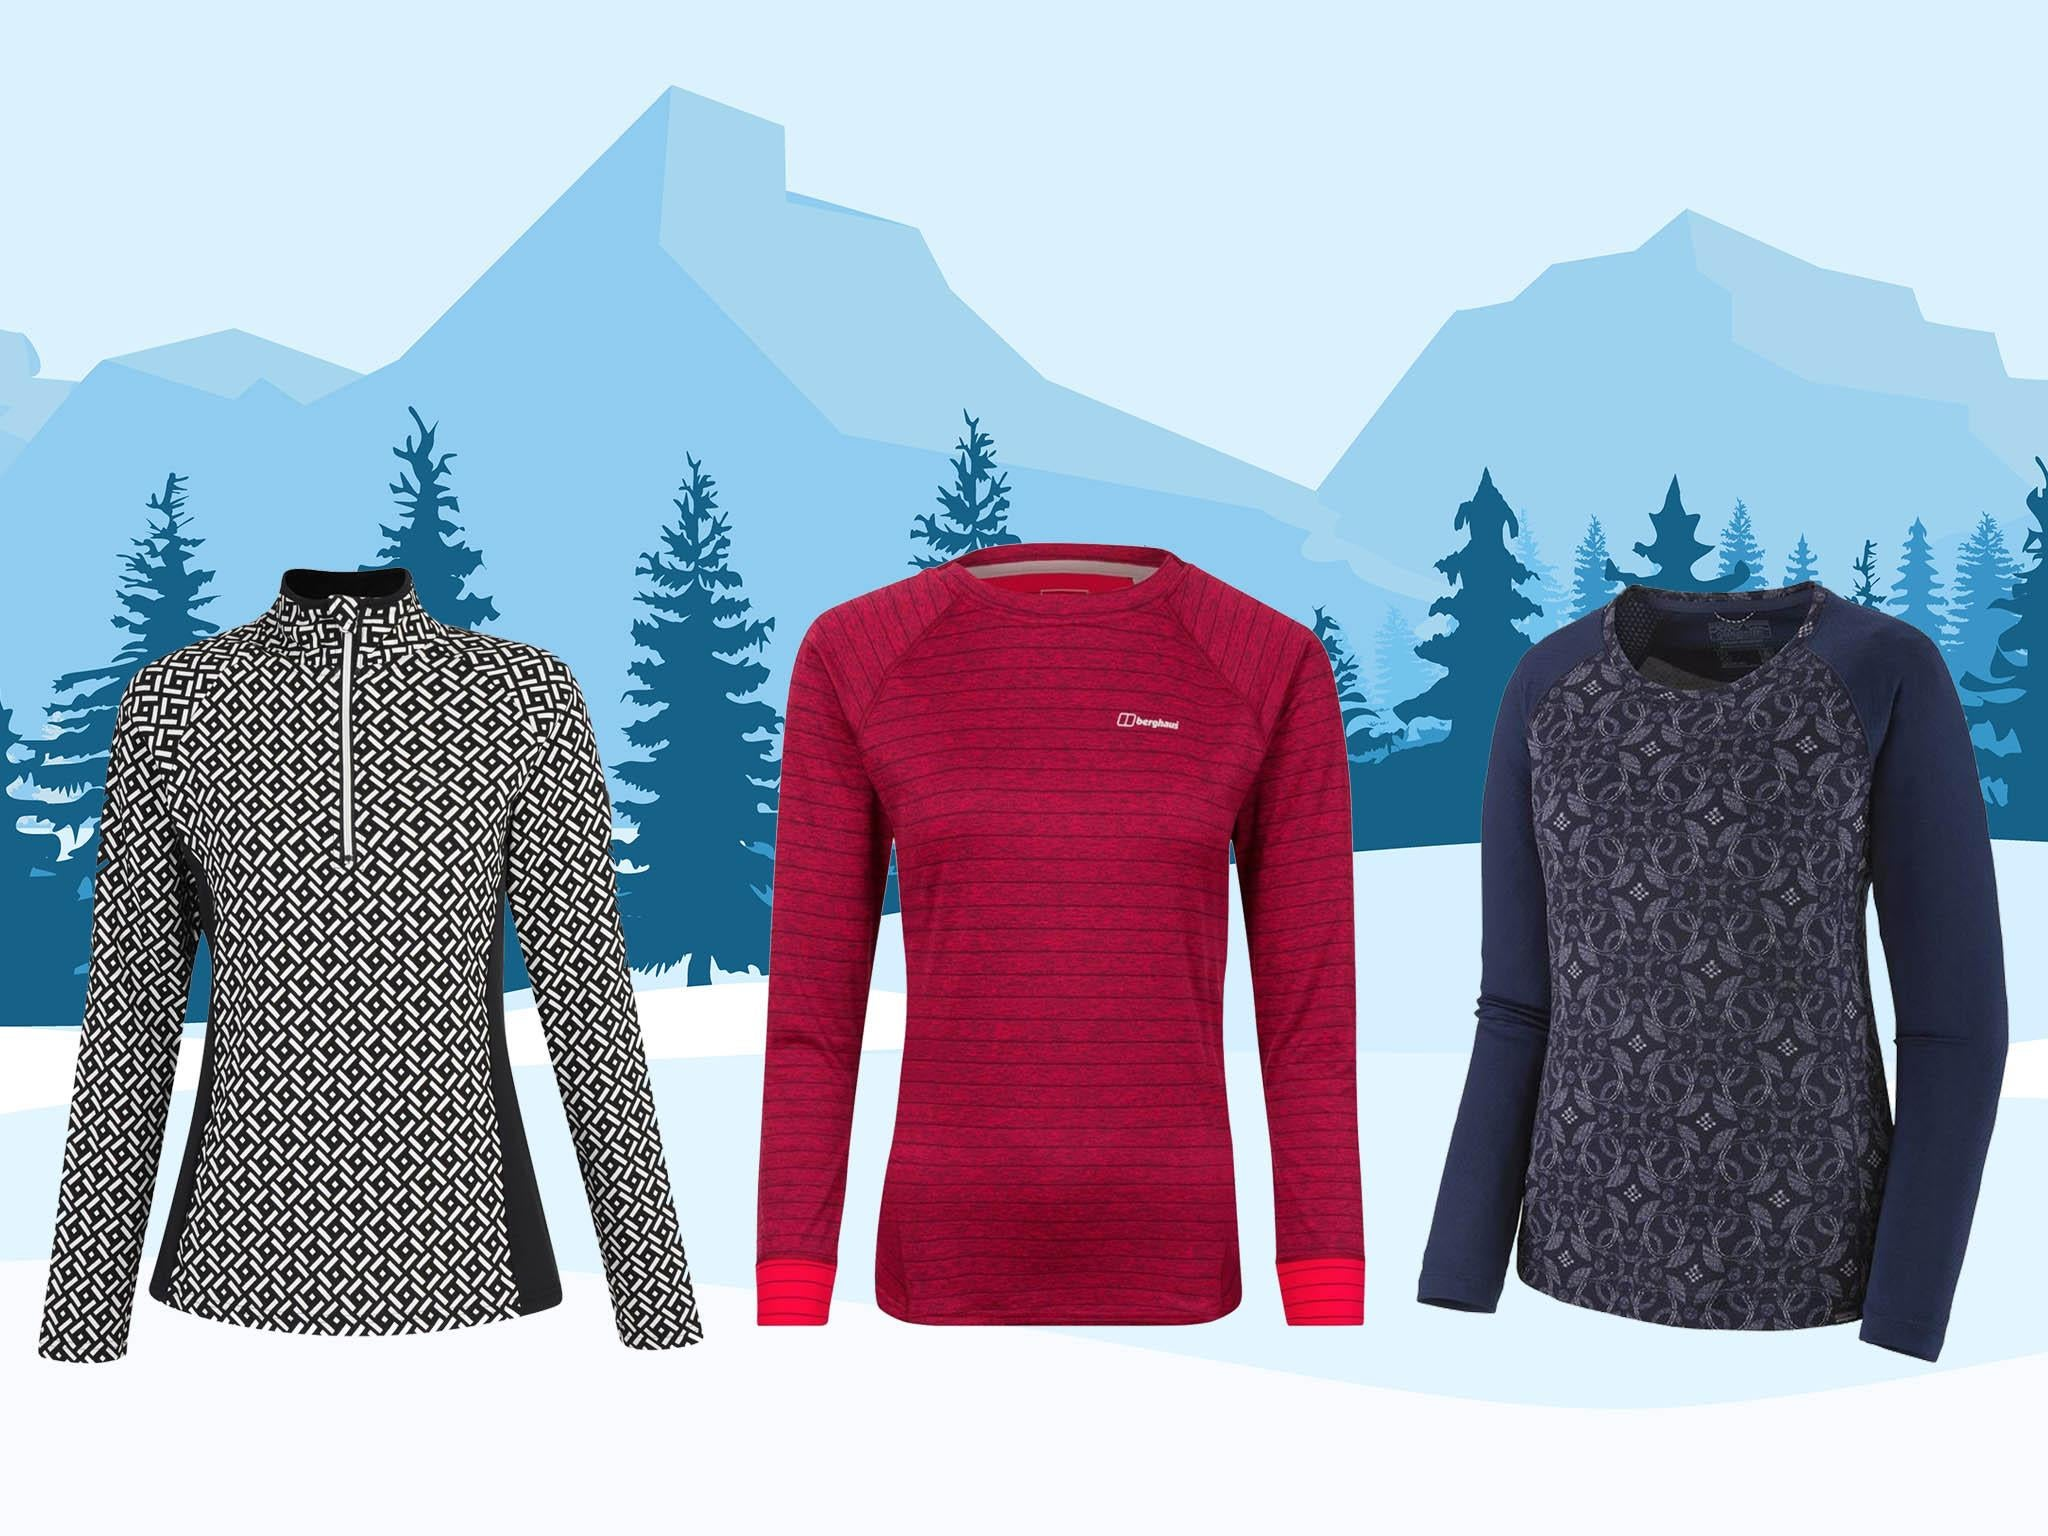 11 best women's base layers 2019/20 to keep you warm on the mountain